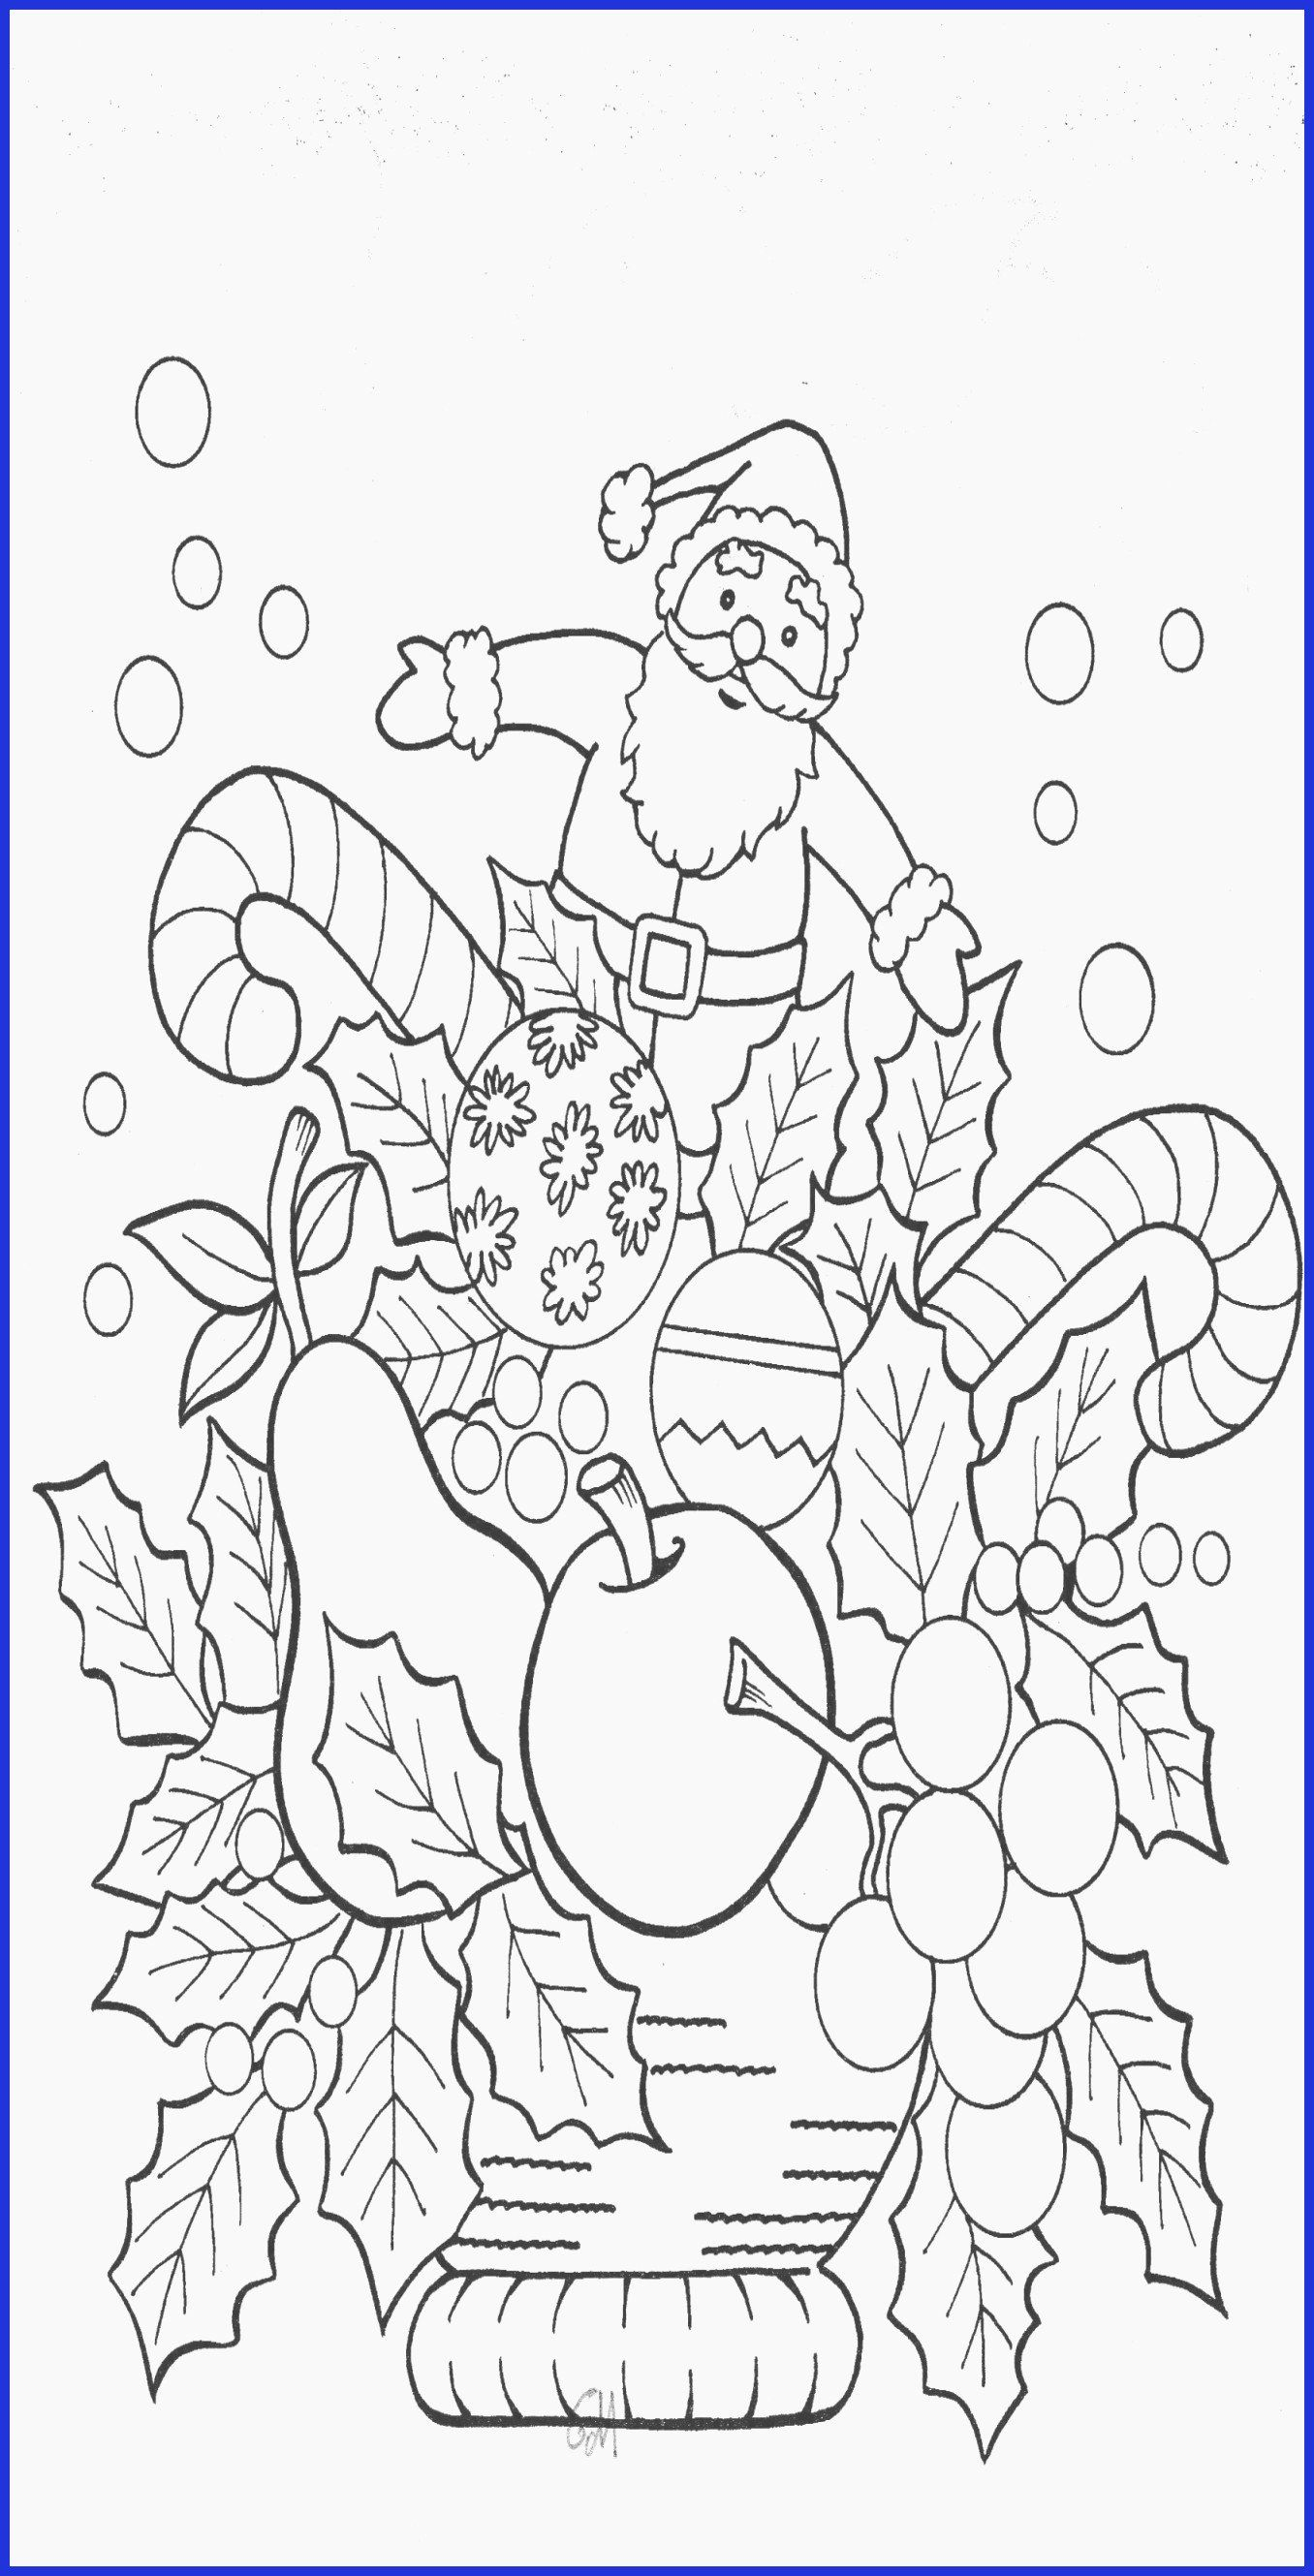 Printable Christmas Coloring Pages | Parents | 2659x1356